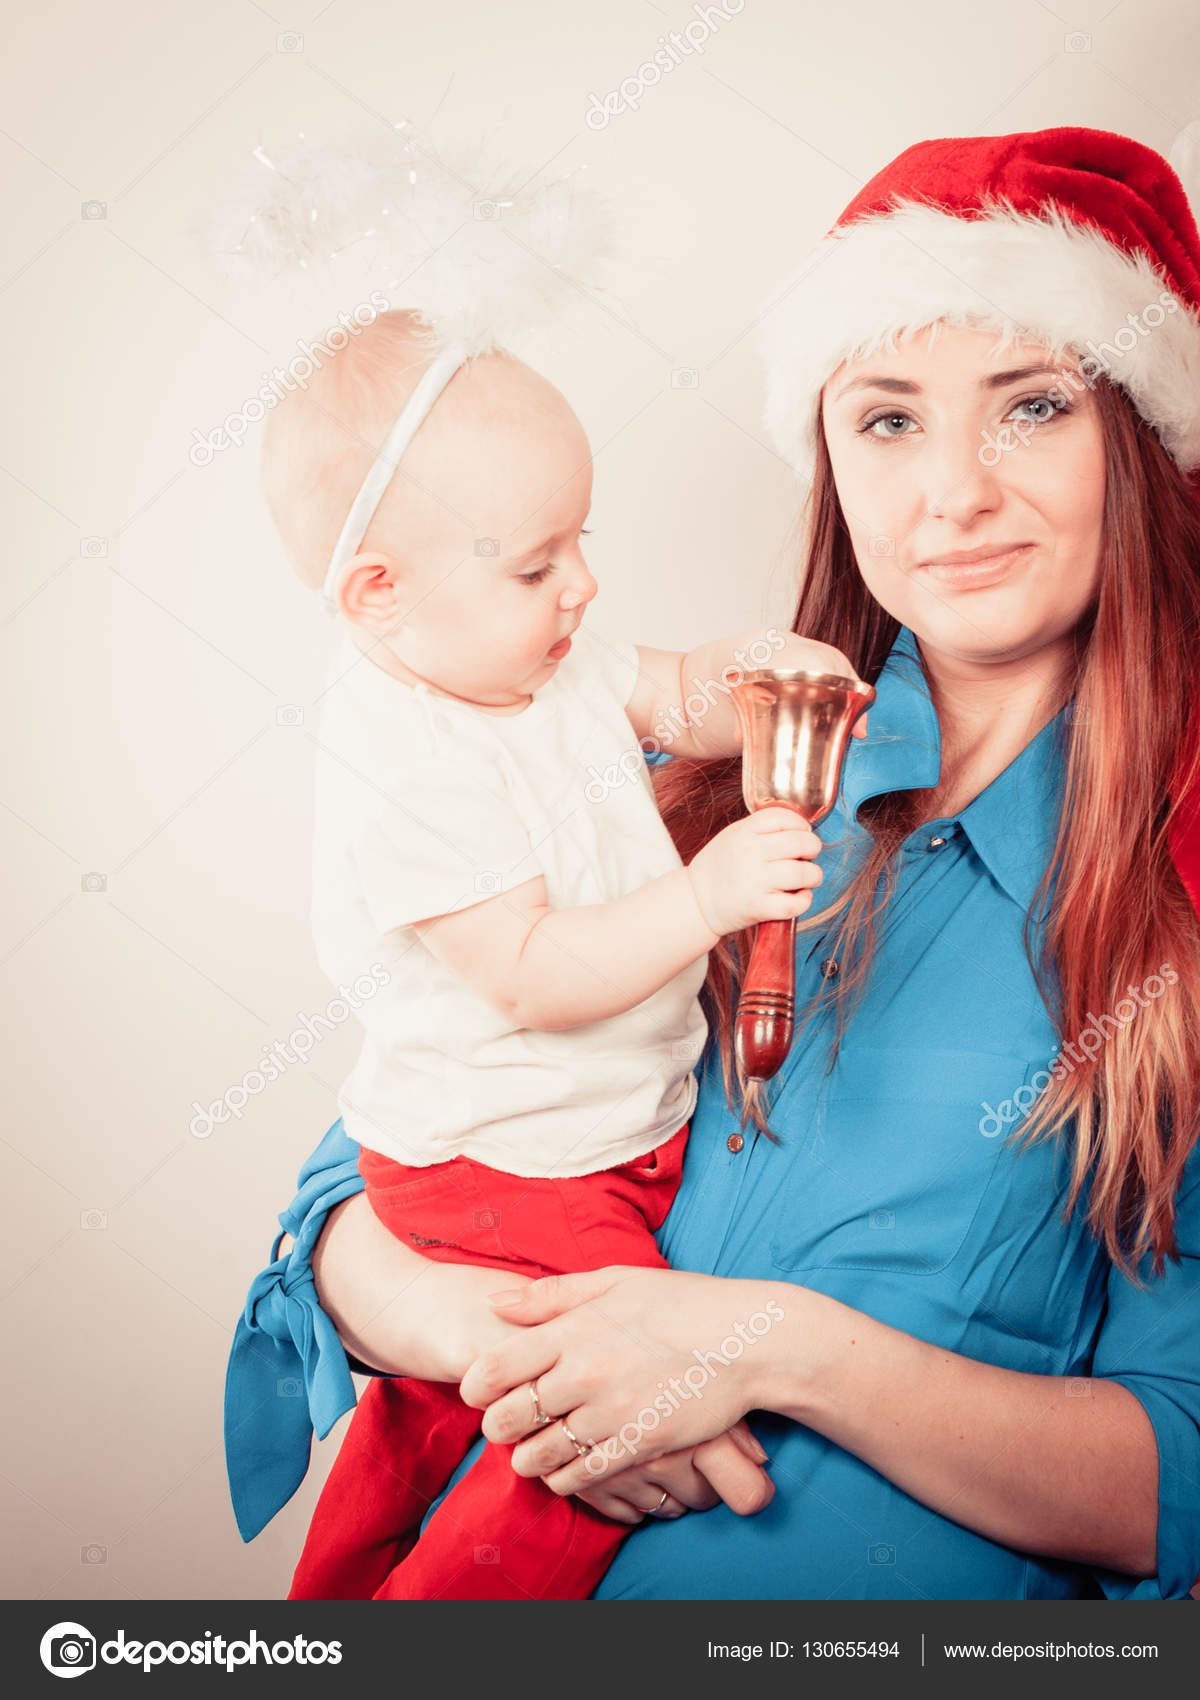 c3be4611b0690 Family celebration concept. Christmas woman with cute baby. Beautiful lady  has red santa claus cap.